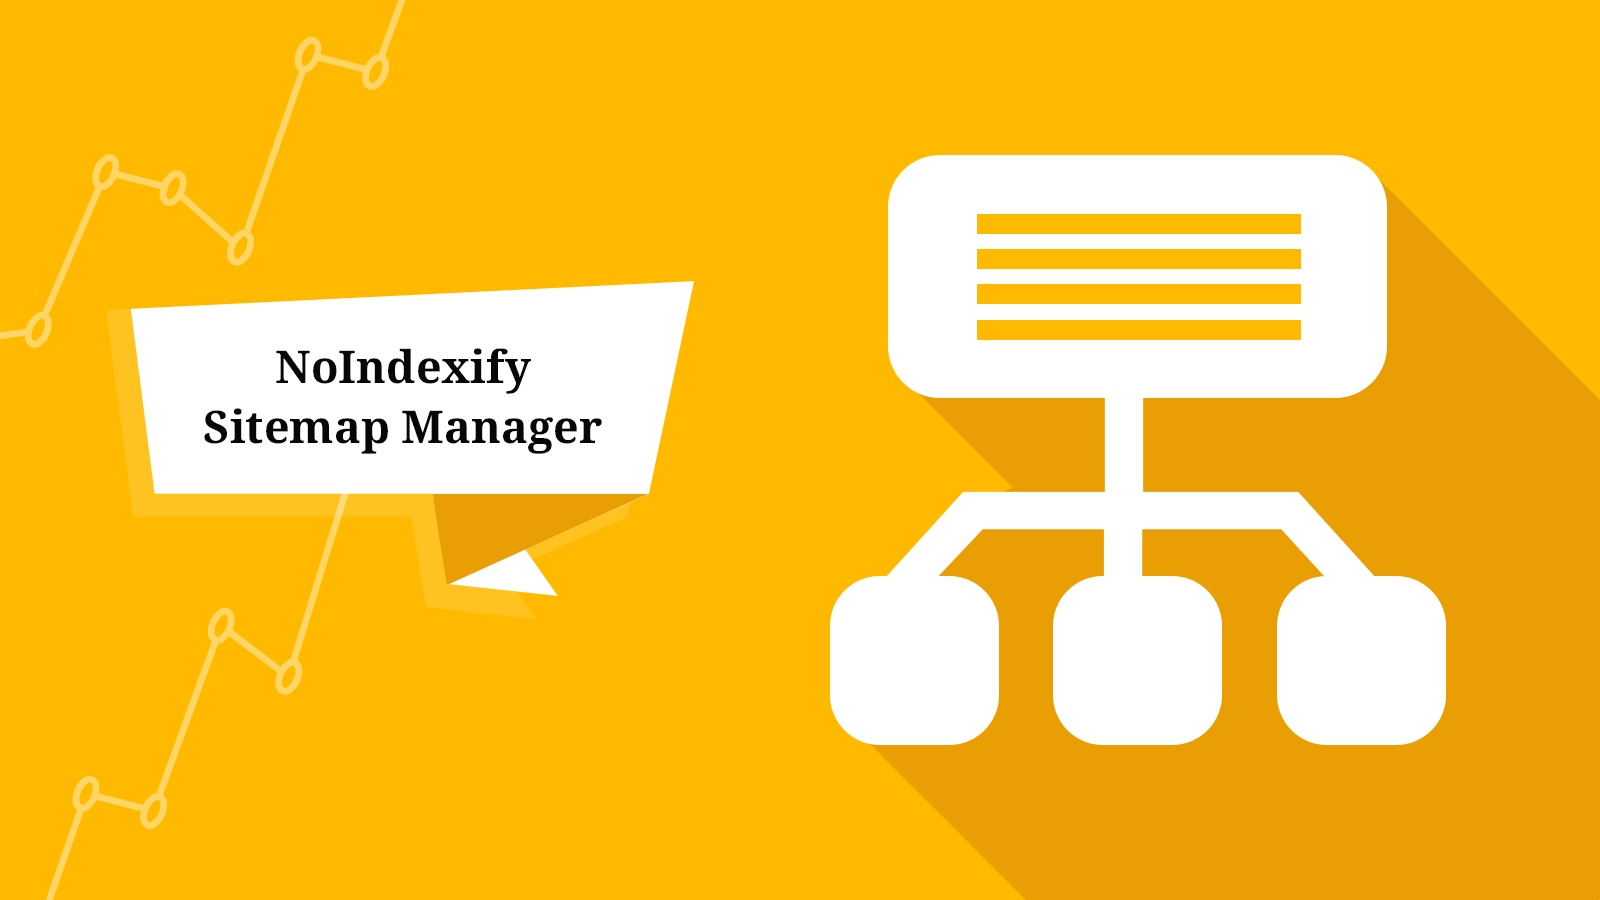 NoIndexify – Sitemap Manager